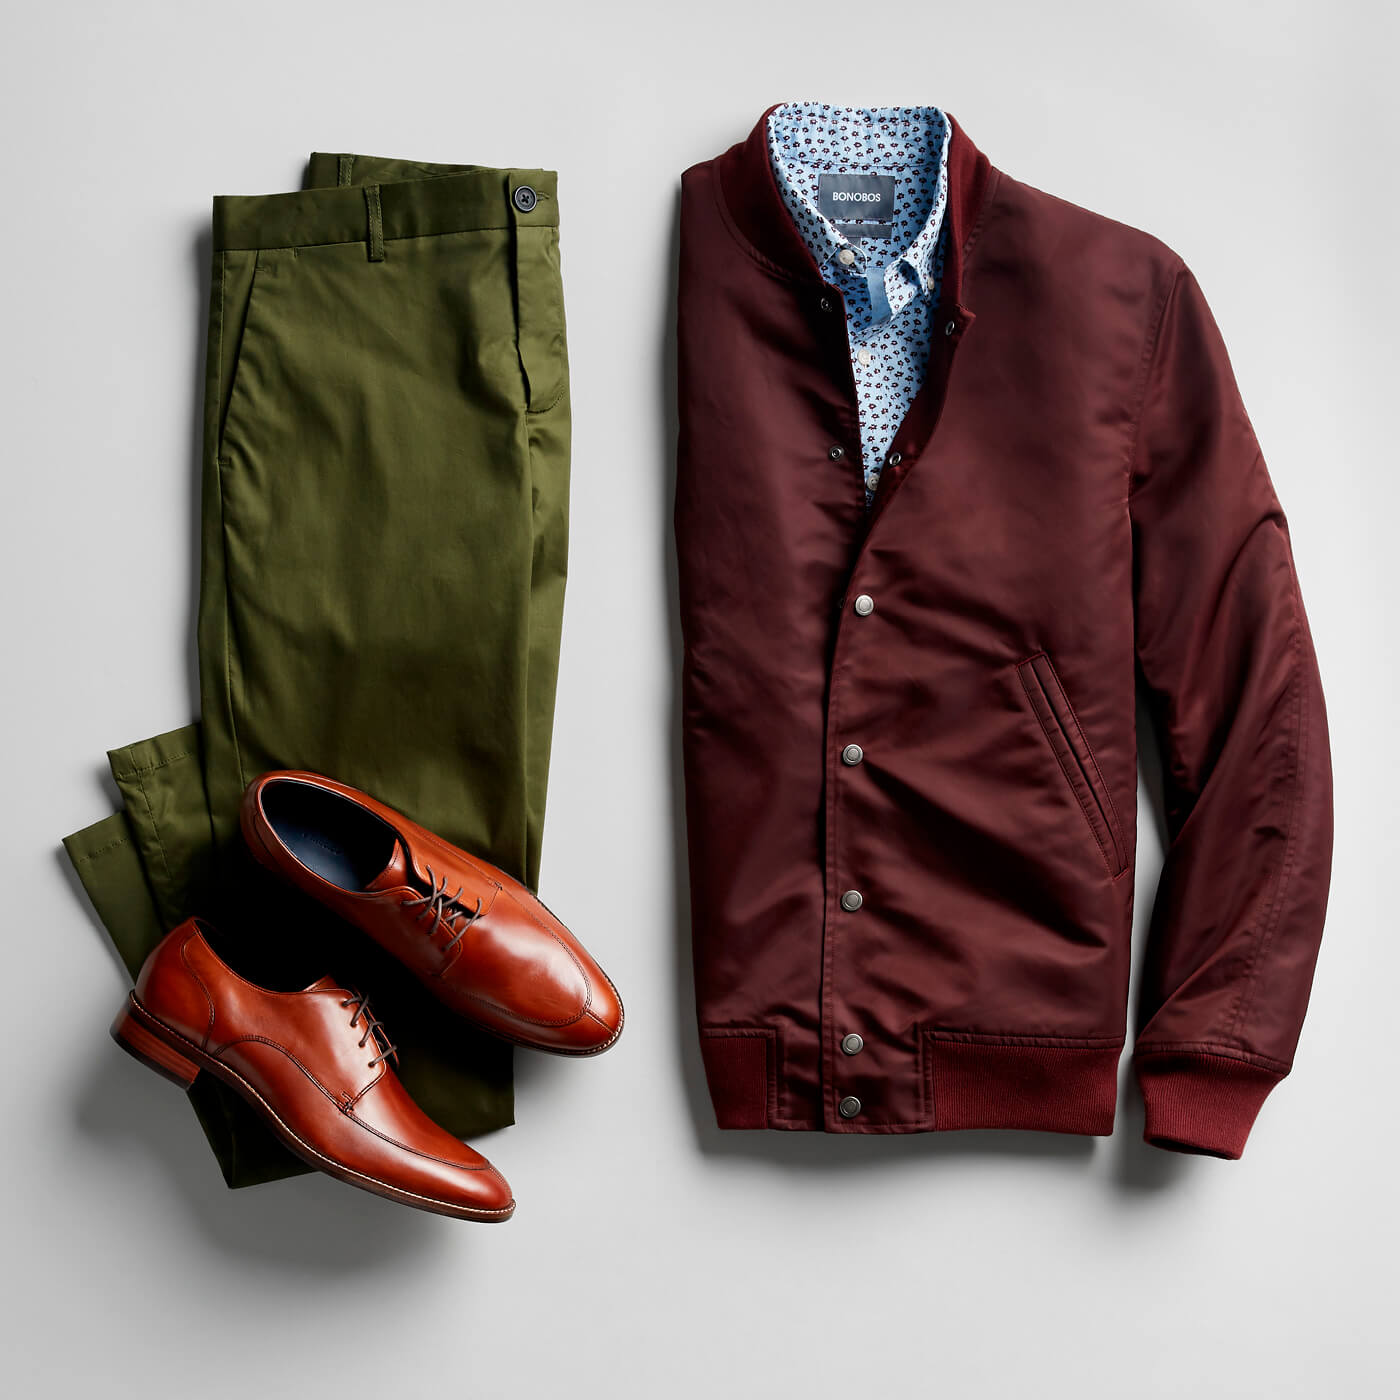 blue floral print shirt, maroon bomber jacket, cognac dress shoes and green chinos